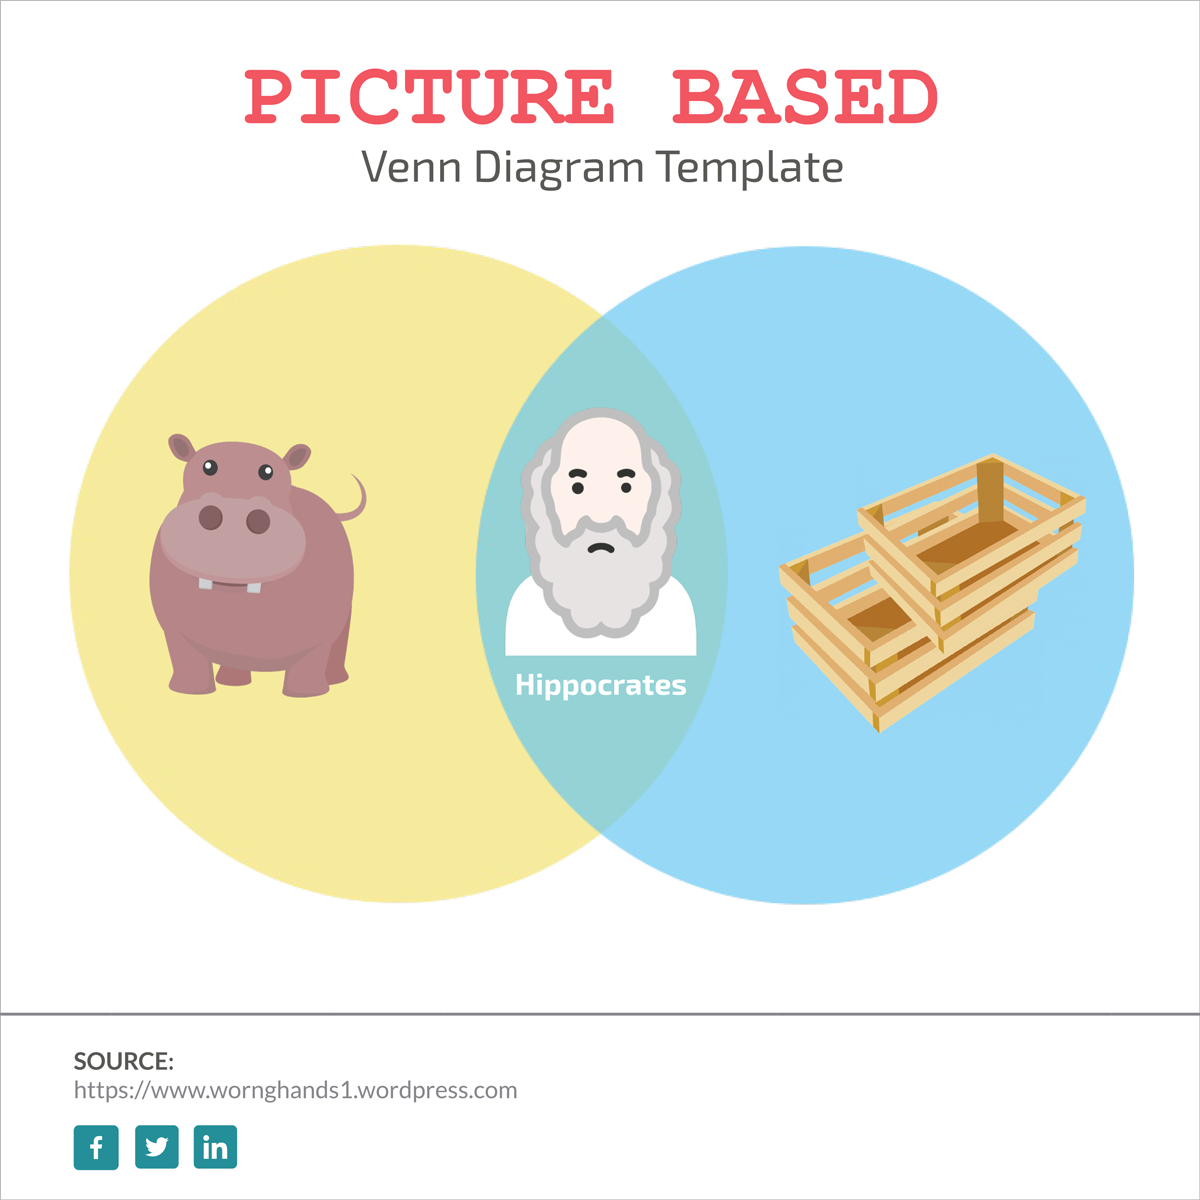 Picture-Based venn diagram template